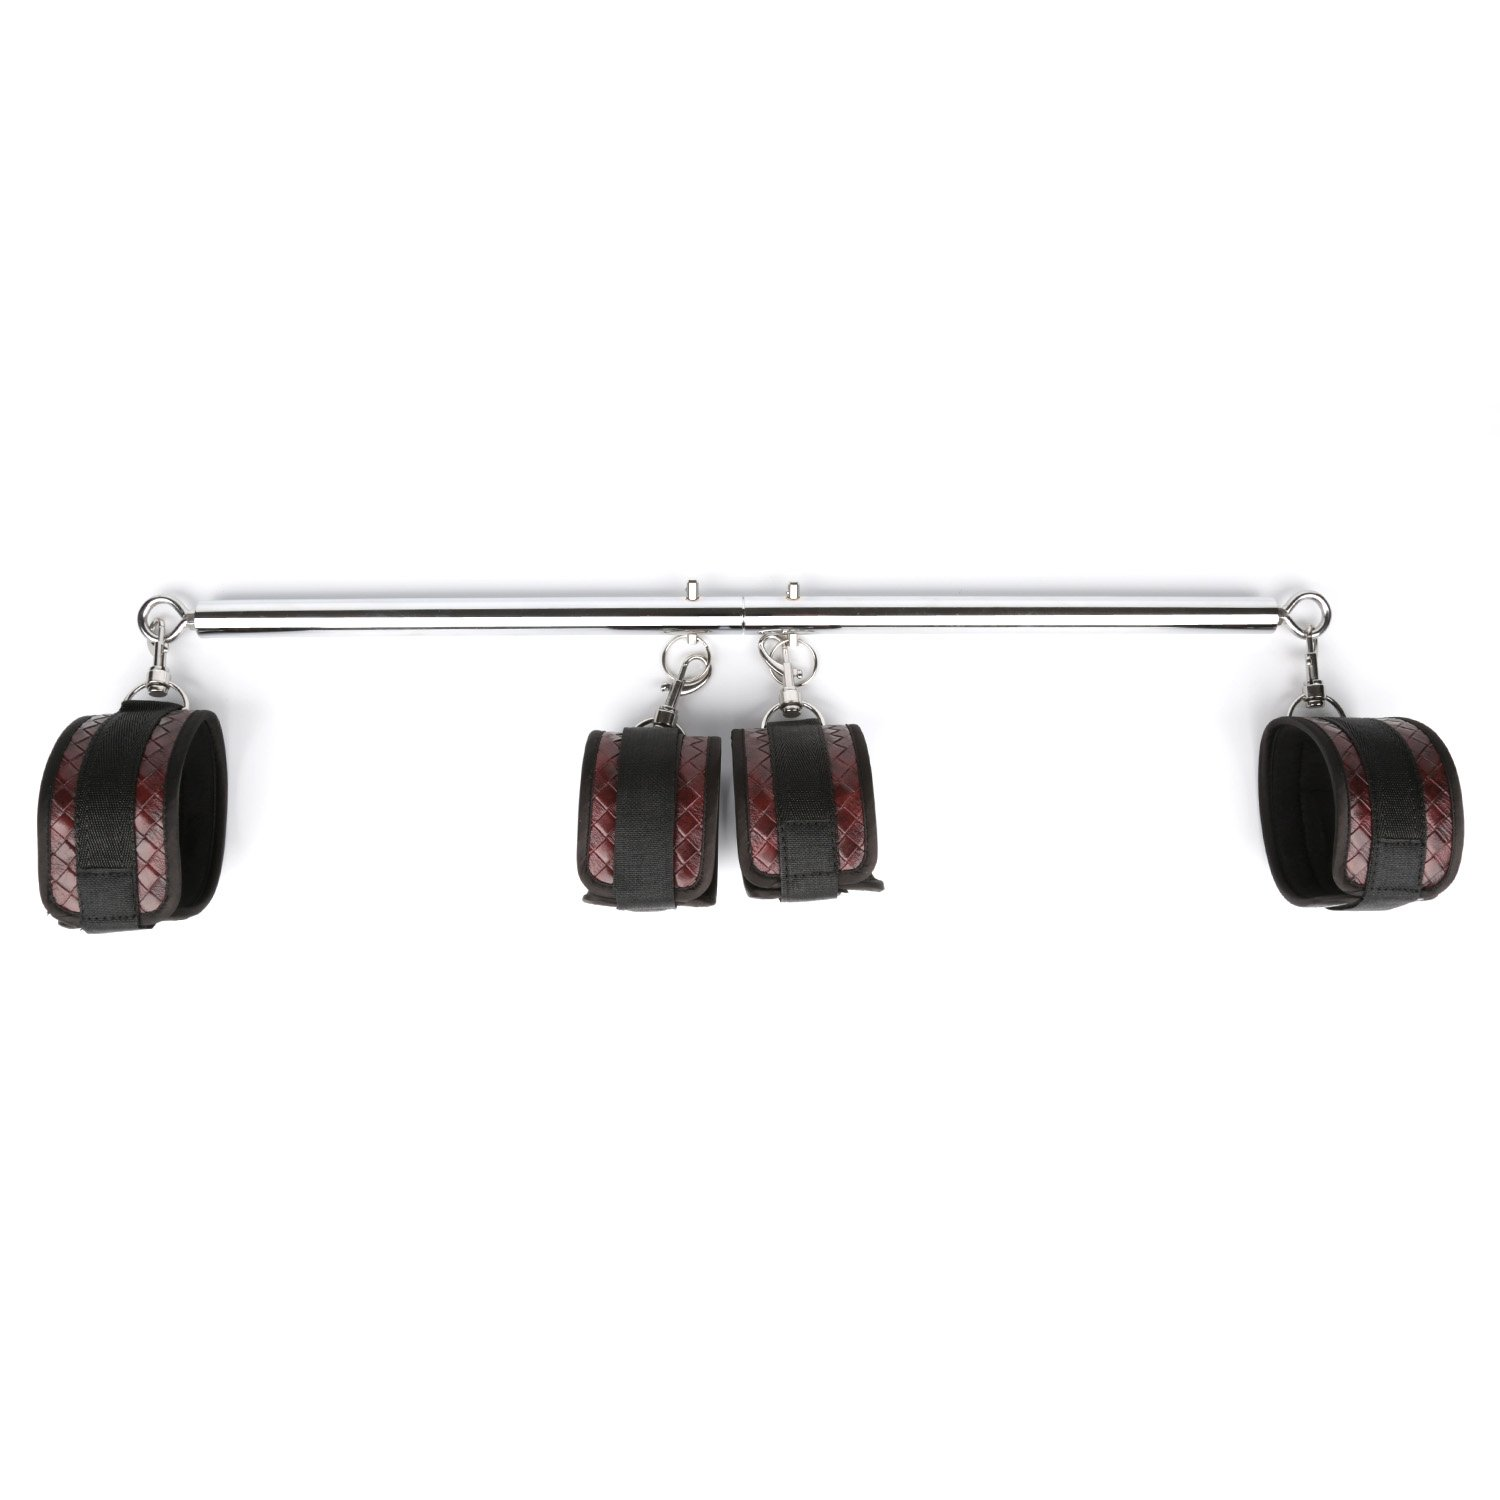 PKBQUEEN Expandable Spreader Bar with 3D Embossed Leather Wrist Ankle Weights Cuffs Position Master Sports Training